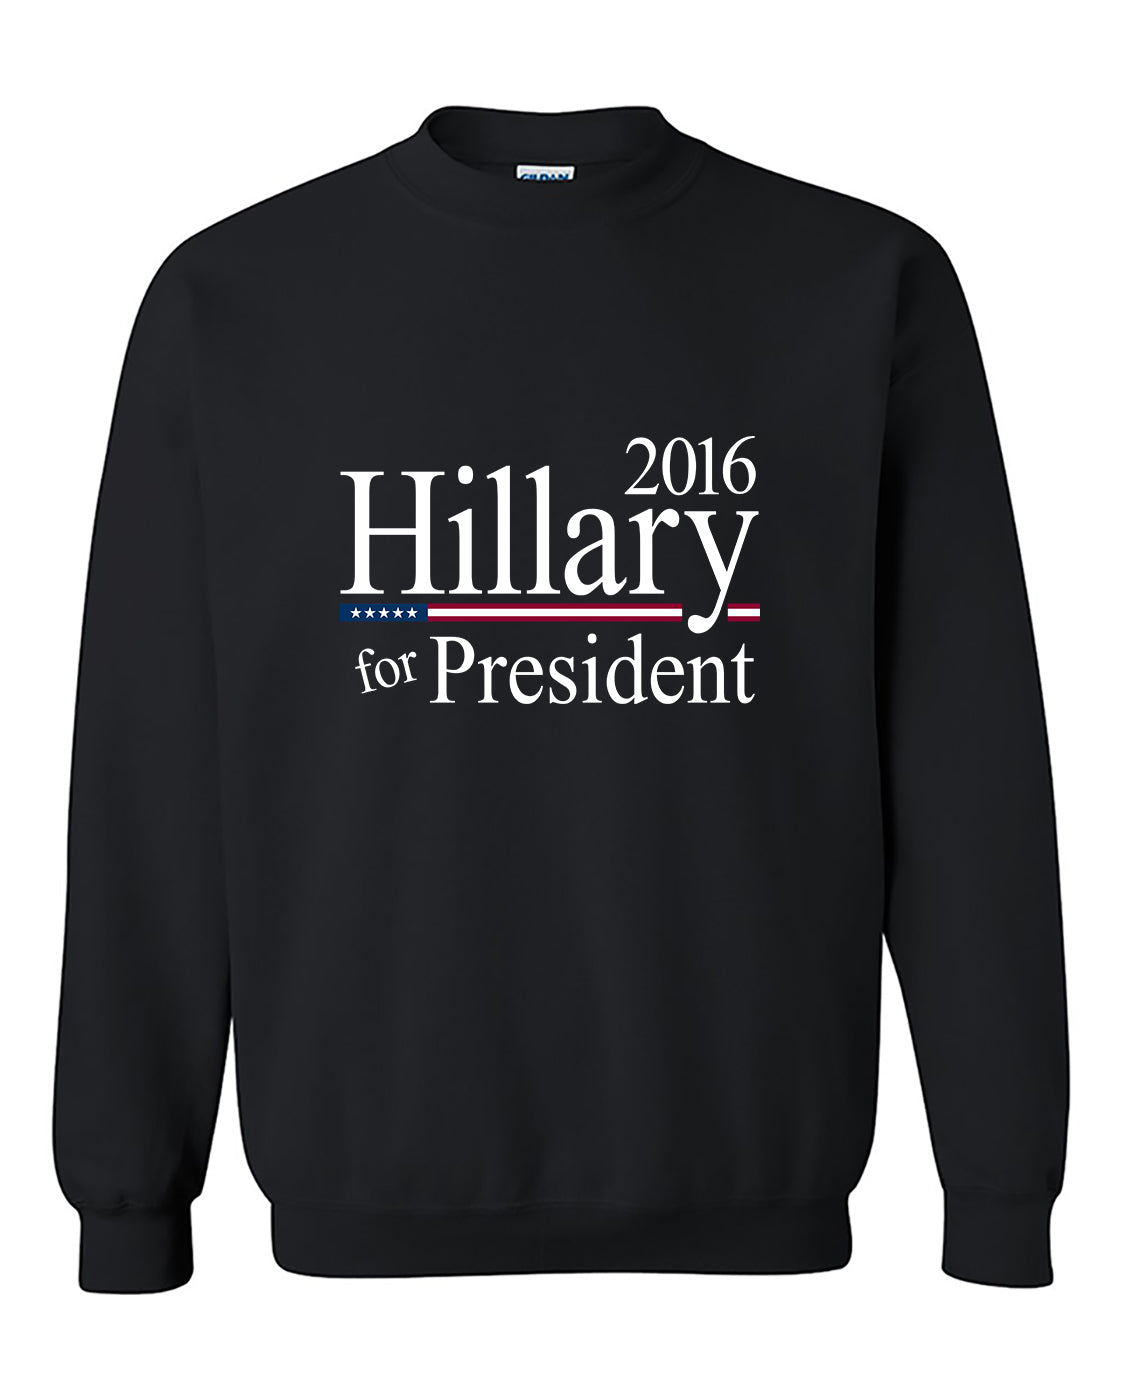 Hilary Clinton President For 2016 American President Crewneck Sweater